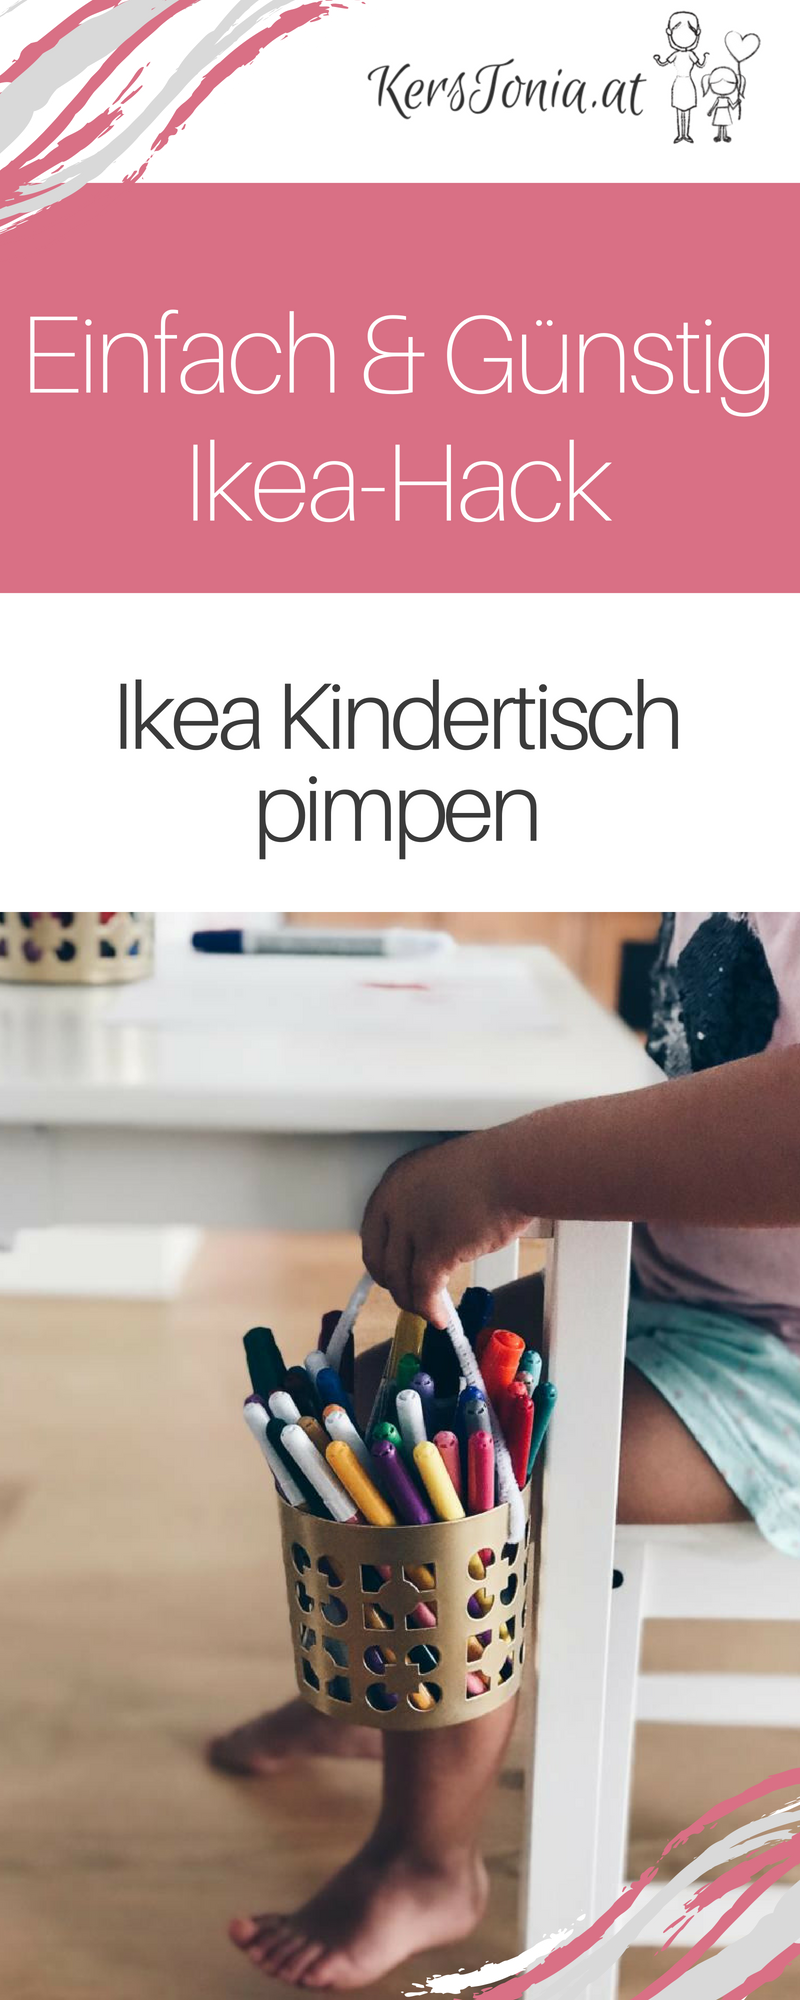 Office Günstig How To Ikea Kindertisch Upcycling Einfach Günstig Family